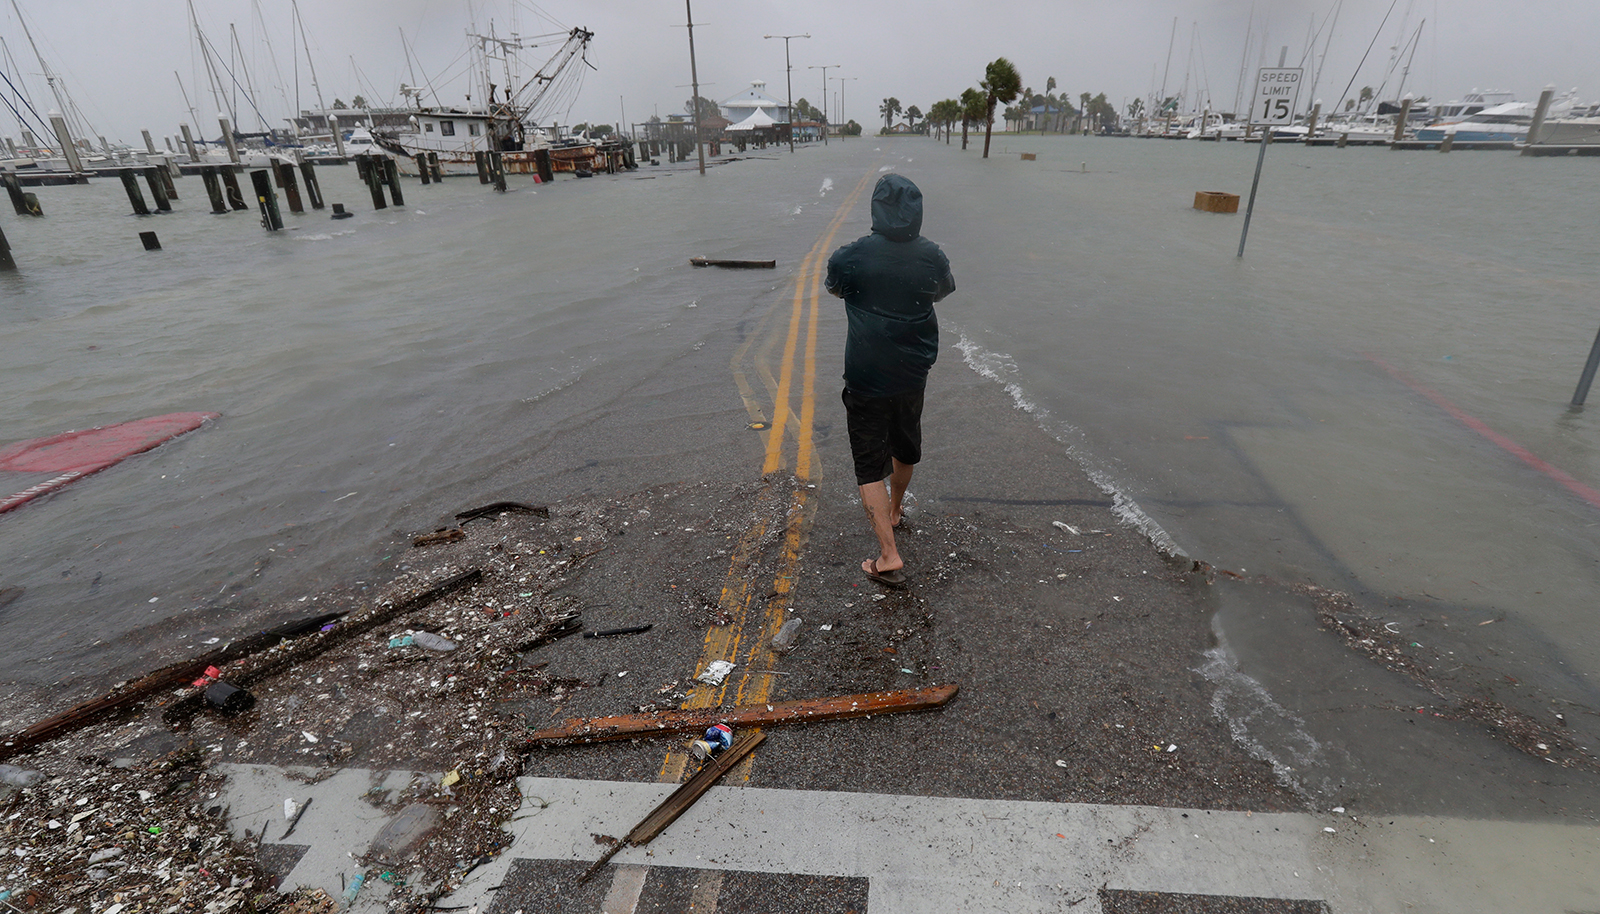 A person walks up a road beginning to flood as Hurricane Hanna makes landfall on Saturday in Corpus Christi, Texas.